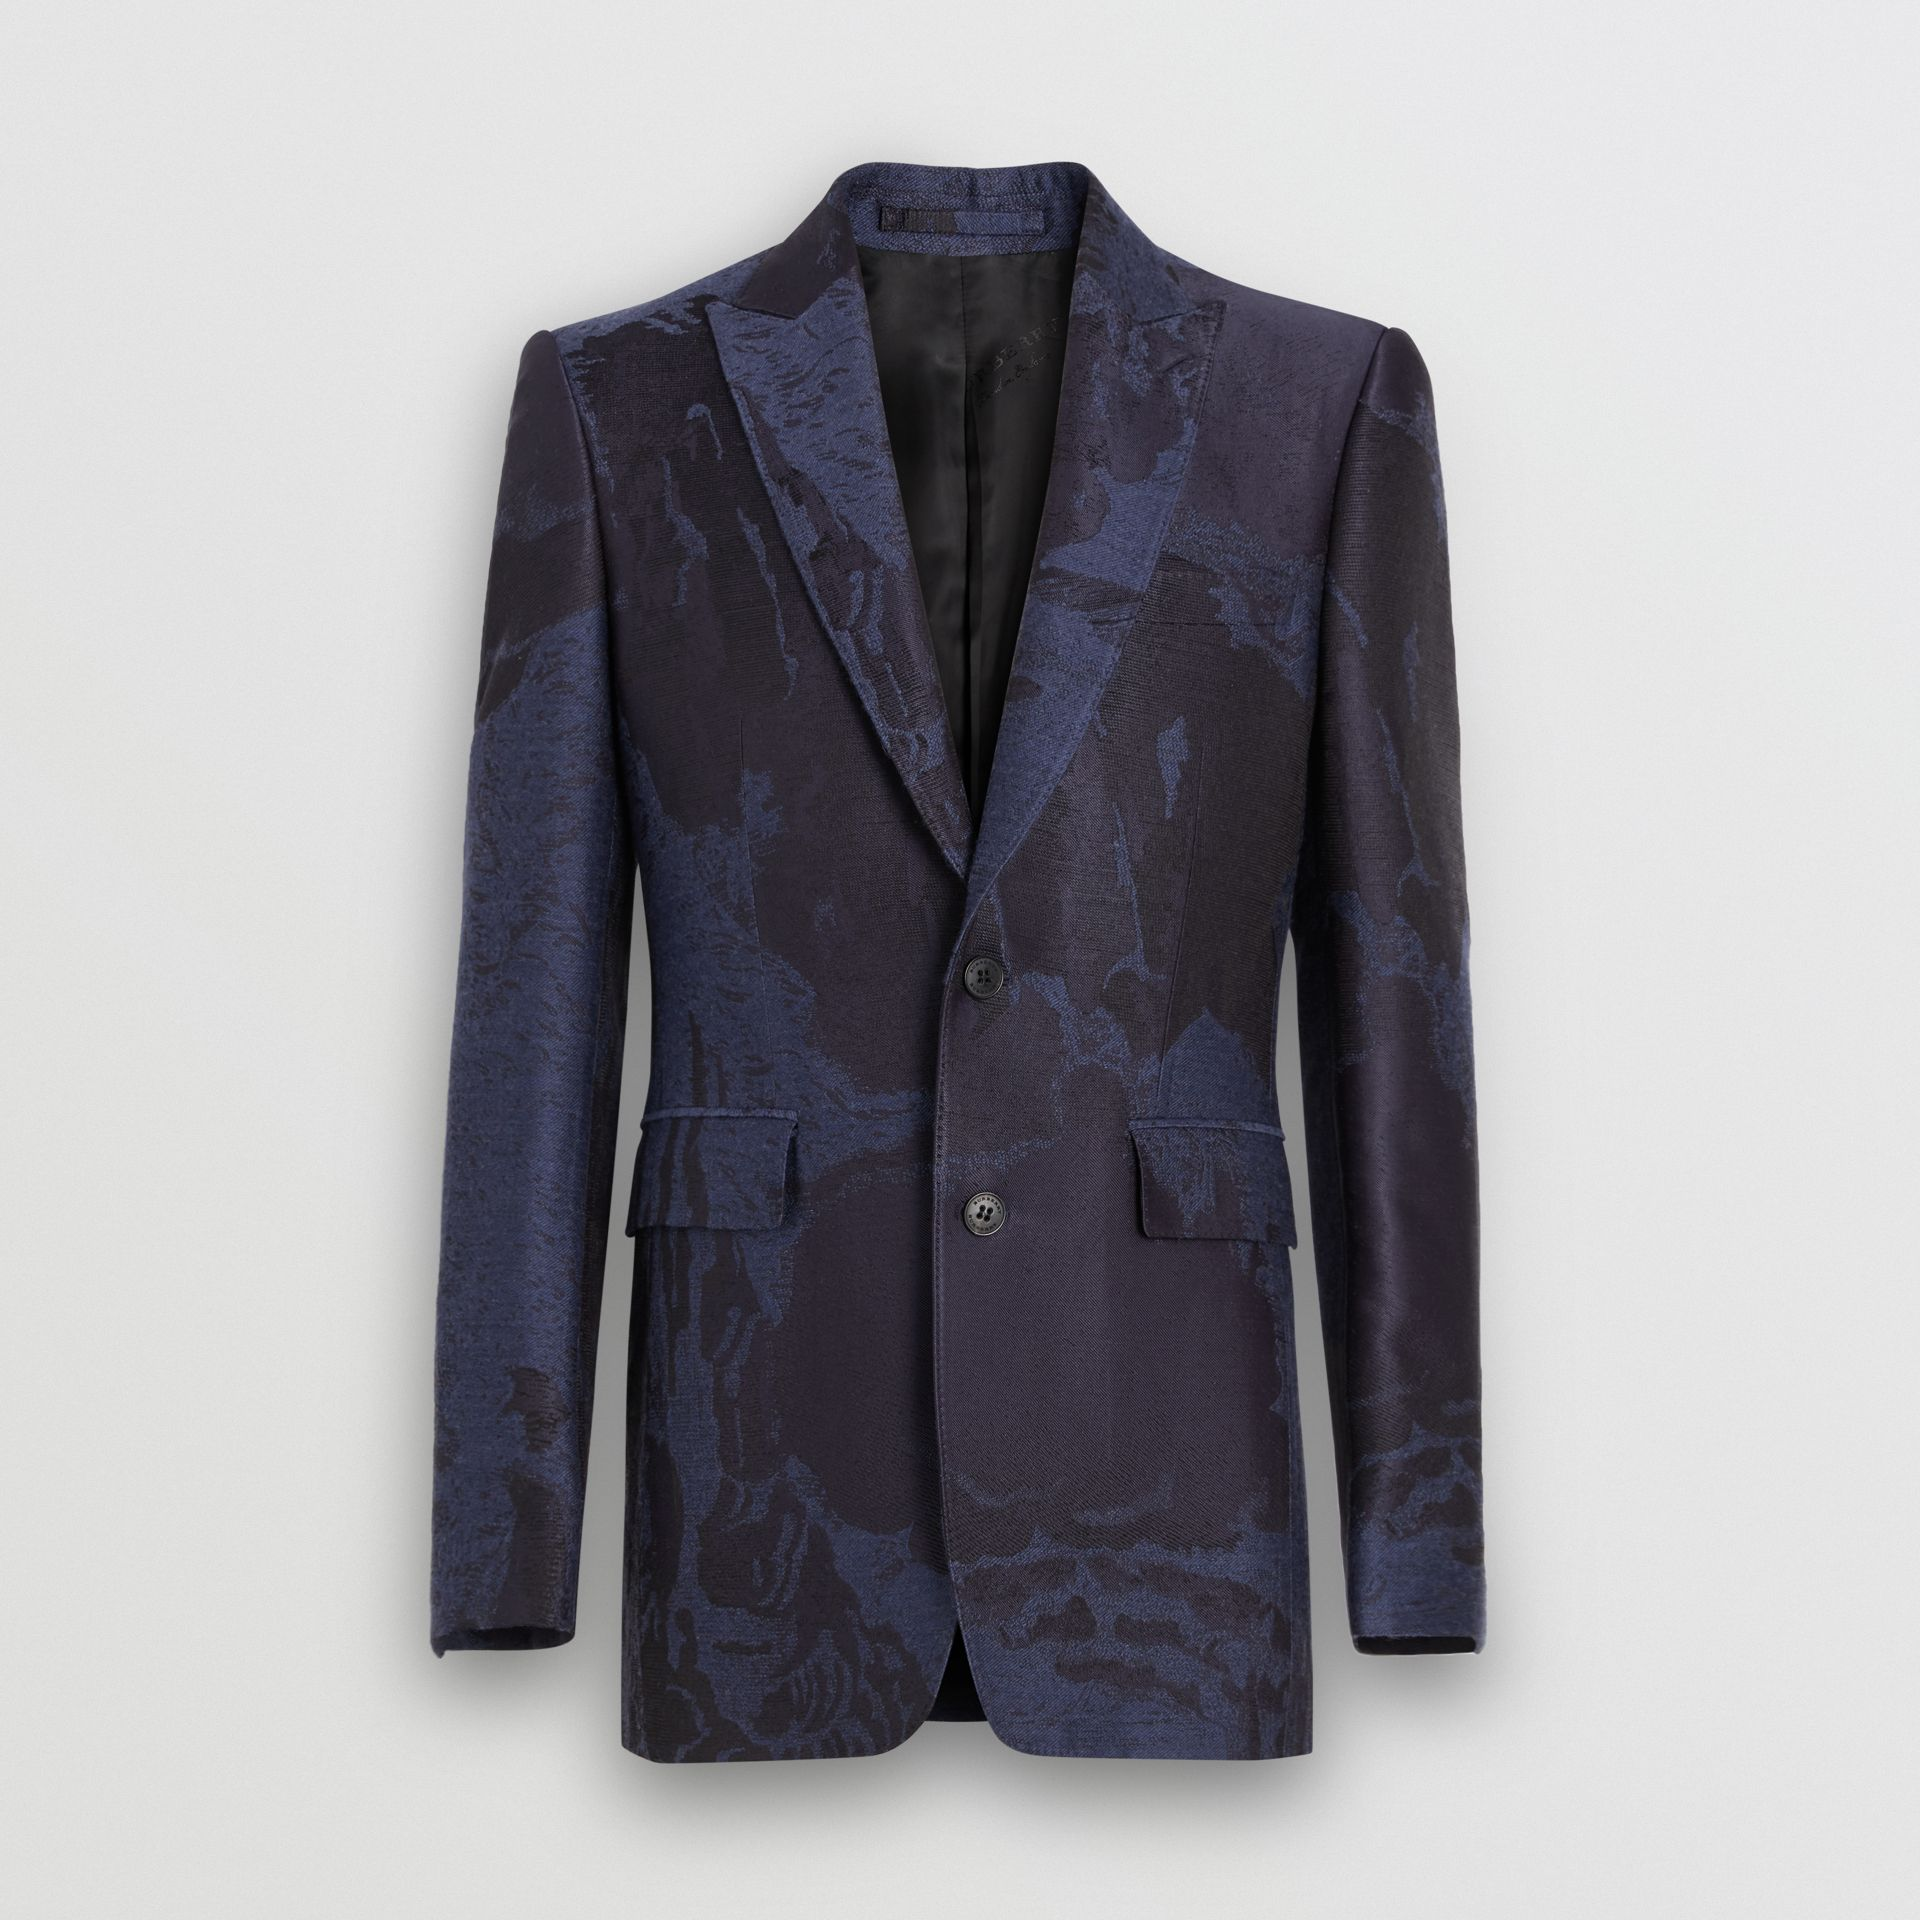 Classic Fit Dreamscape Wool Blend Tailored Jacket in Midnight Blue - Men | Burberry Singapore - gallery image 3